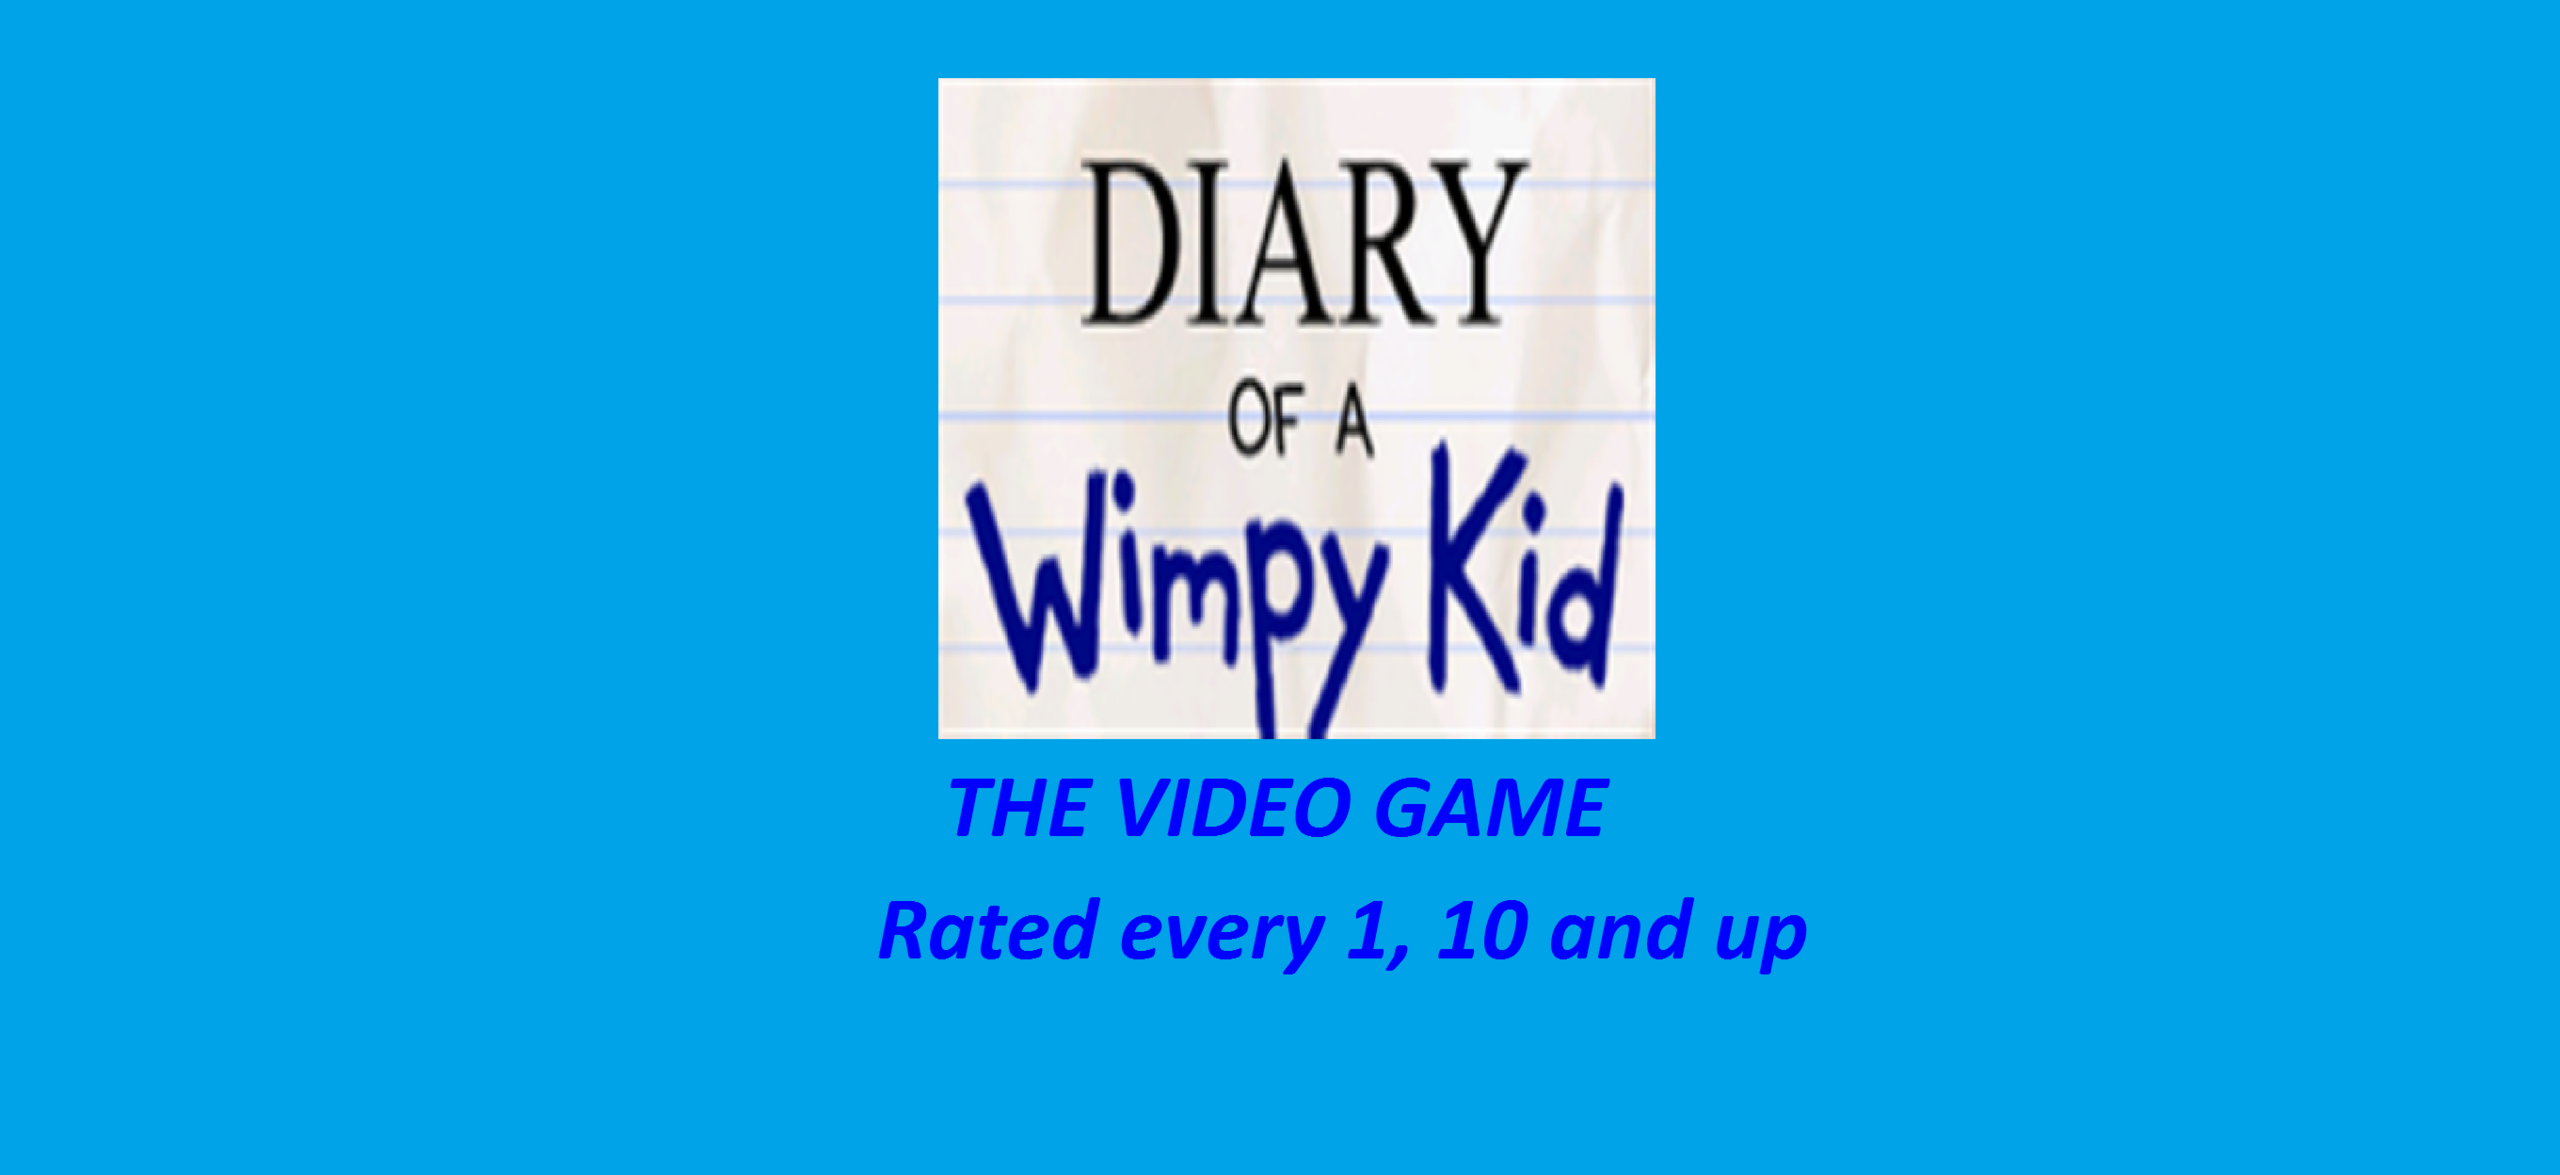 Diary Of A Wimpy Kid The Video Game Diary Of A Wimpy Kid Fan